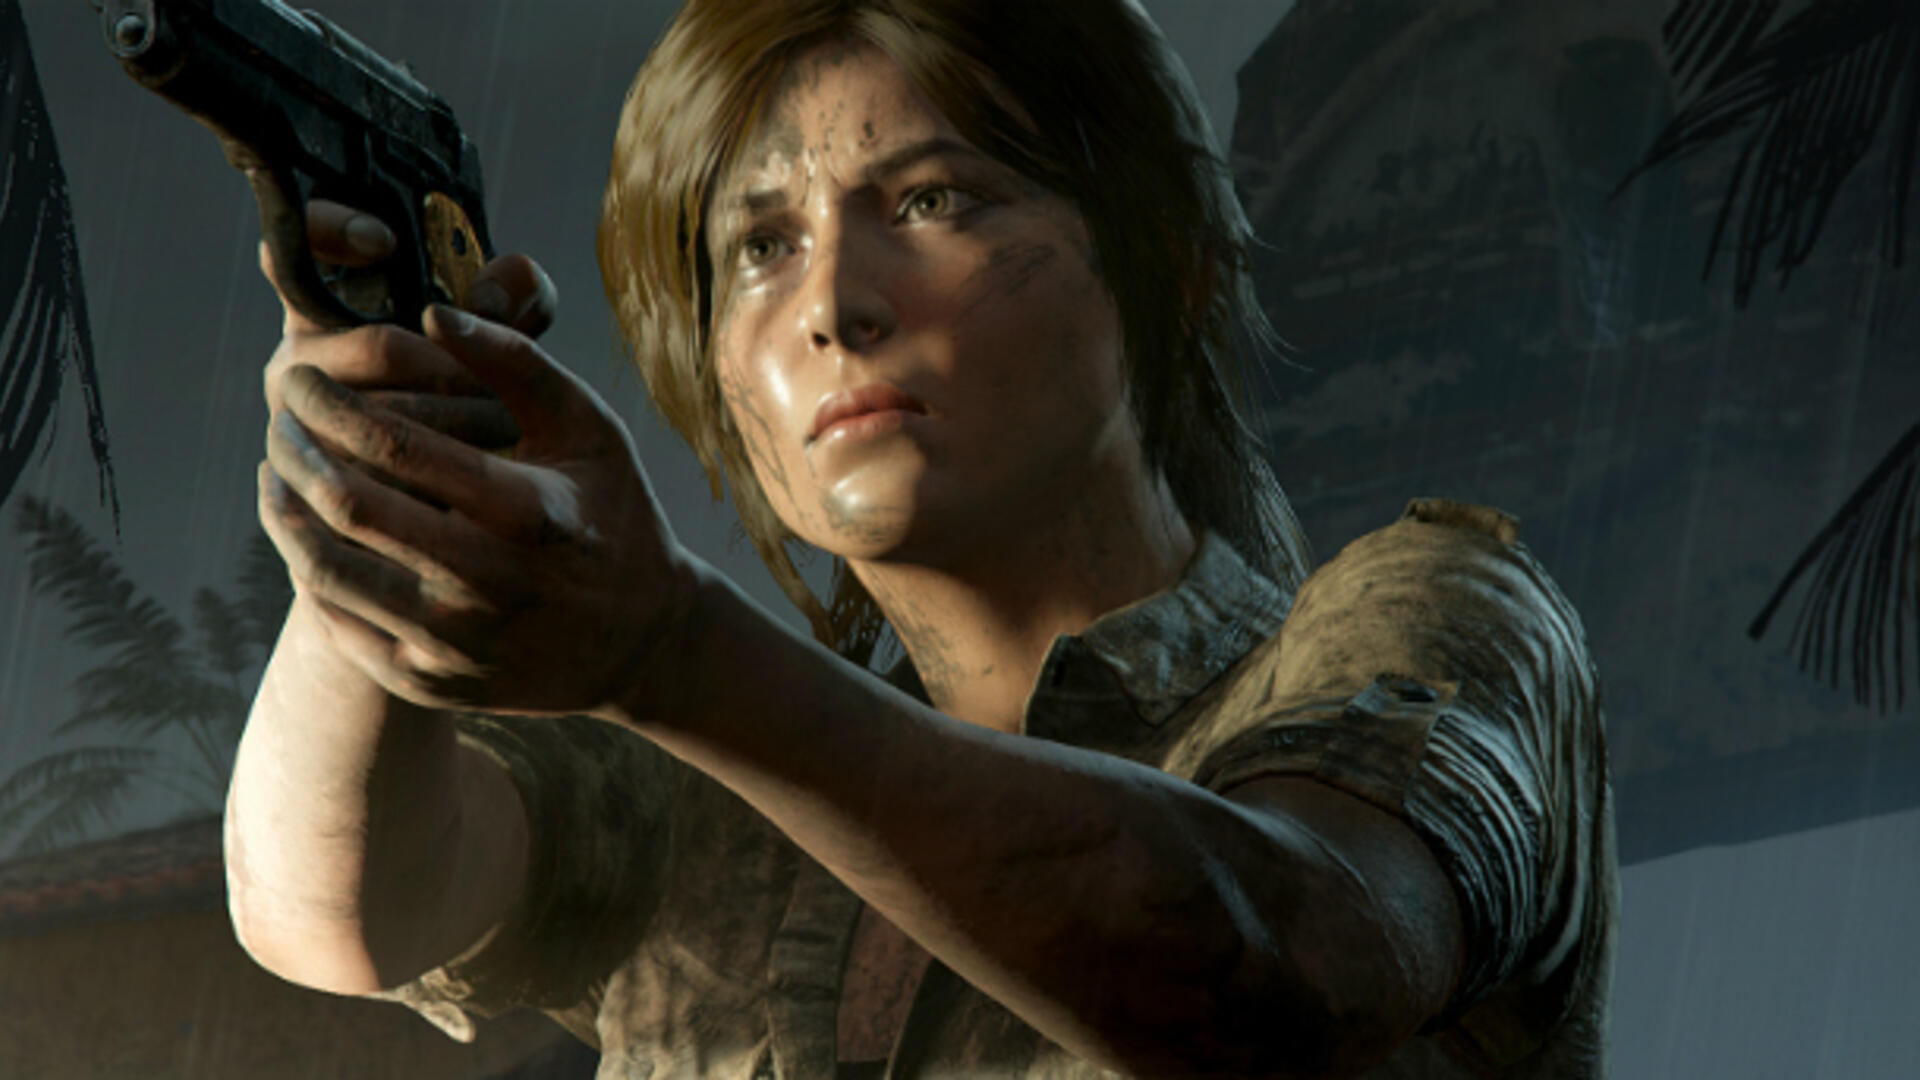 Shadow of the Tomb Raider Photo Mode Update Lets You Control How Buff Lara Is